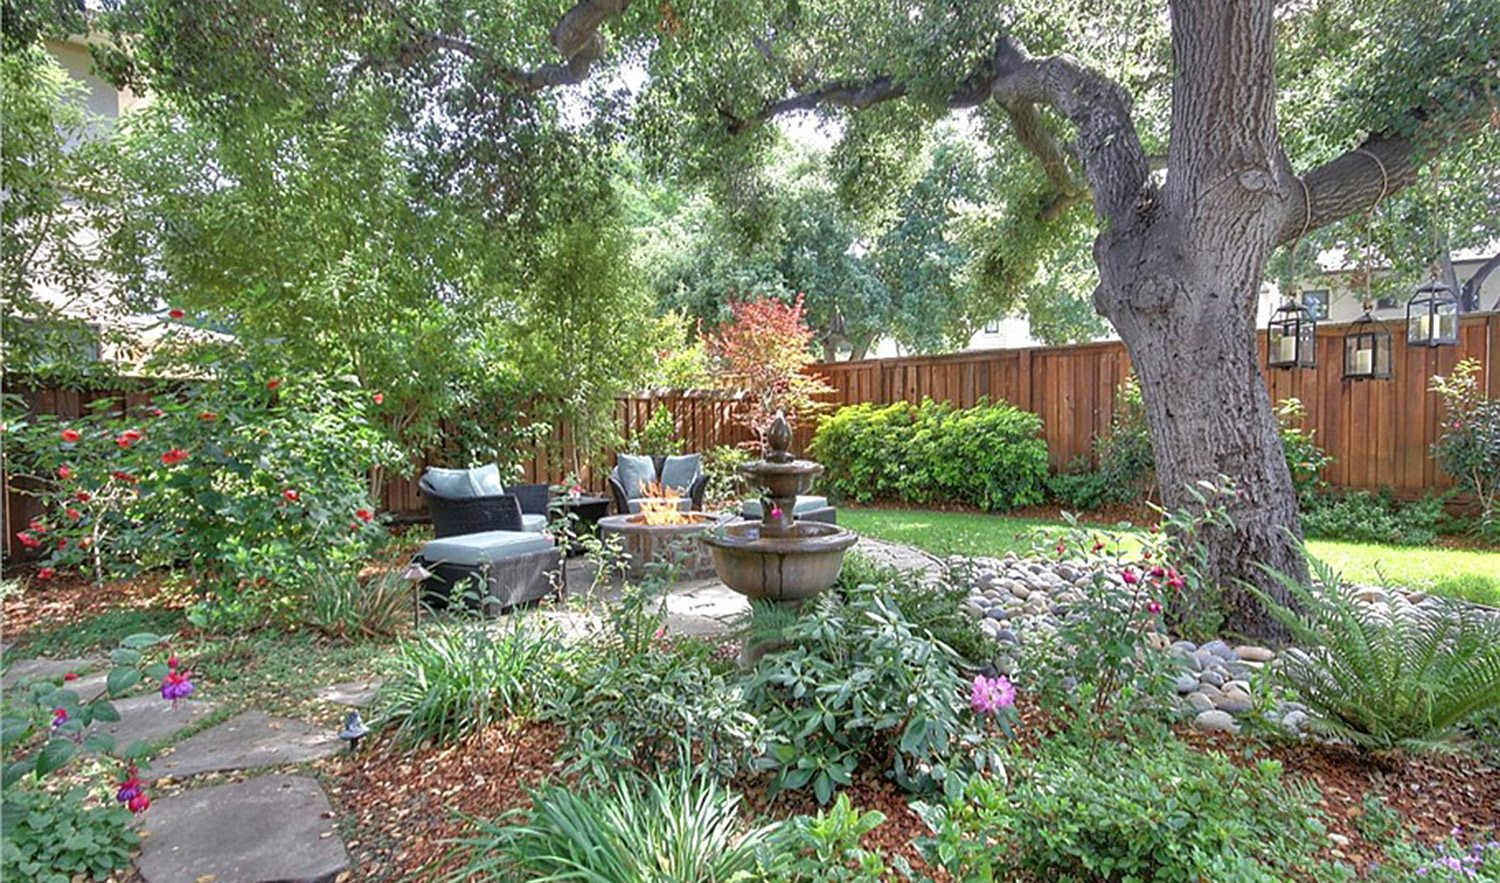 How To Spruce Up Your Yard For Summer